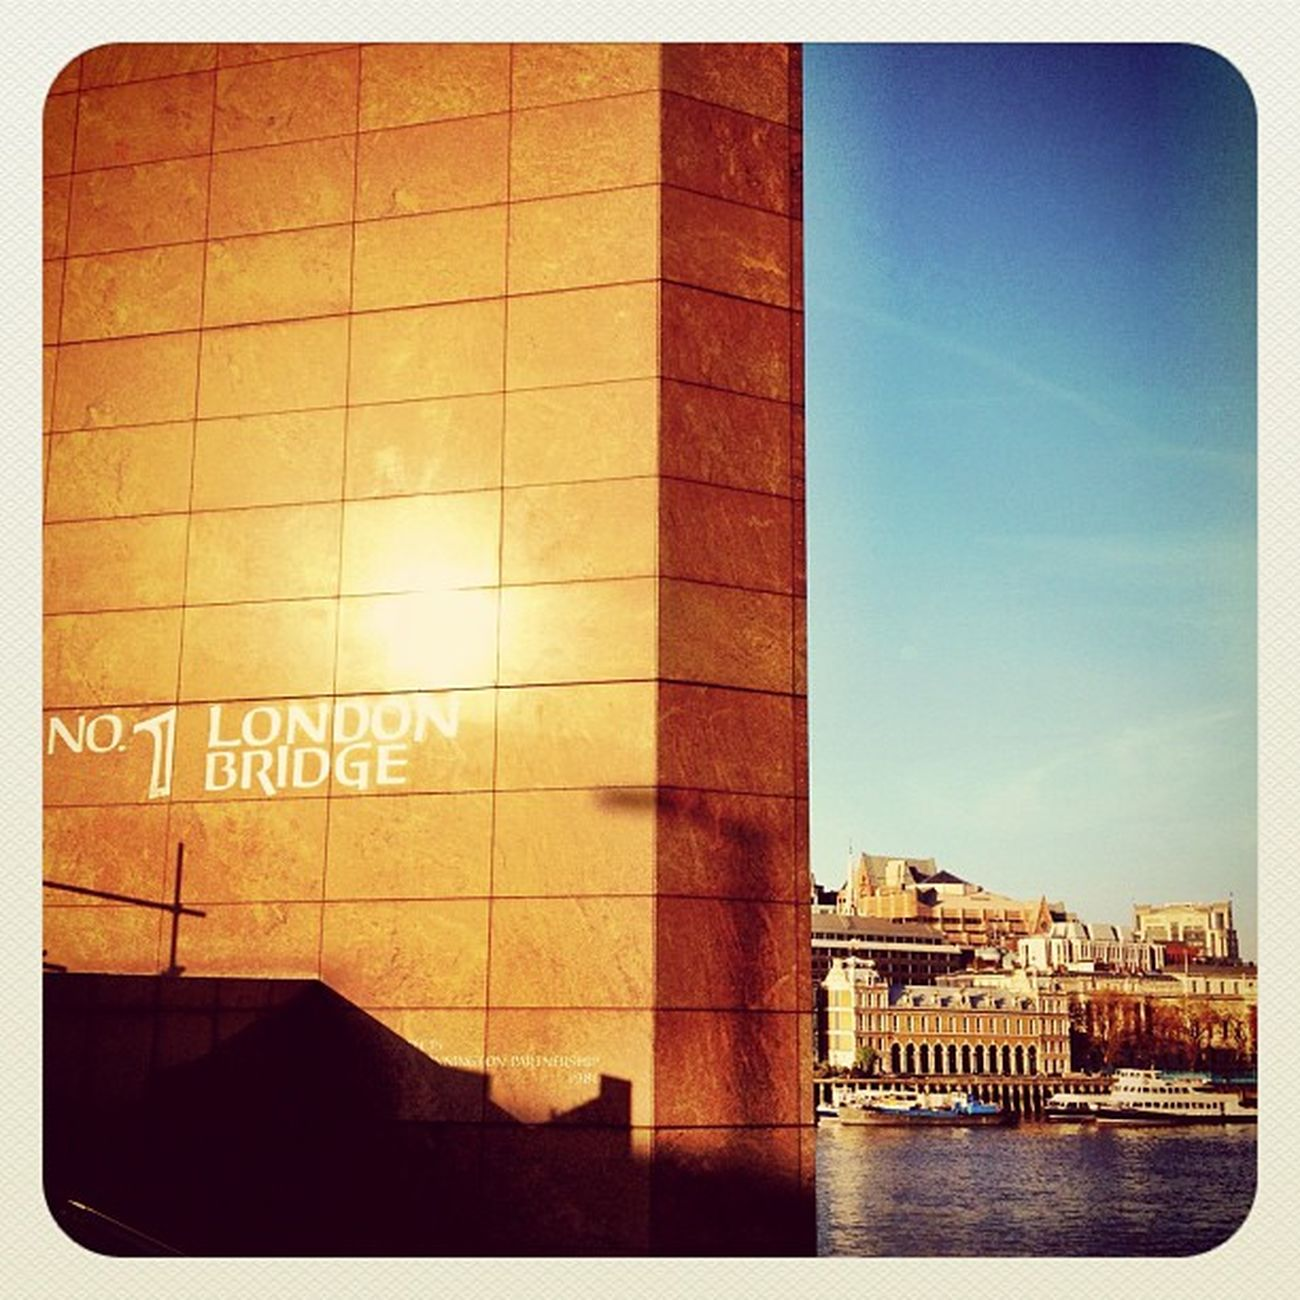 No.1 London Bridge #earlybirdlove #jj #jj_forum #ebstyles_gf #gf_uk #uk #photooftheday #london #instacanvas #iphoneography IPhoneography London Uk Photooftheday Instacanvas Jj  Earlybirdlove Jj_forum Ebstyles_gf Gf_uk Alaniskoinlondon